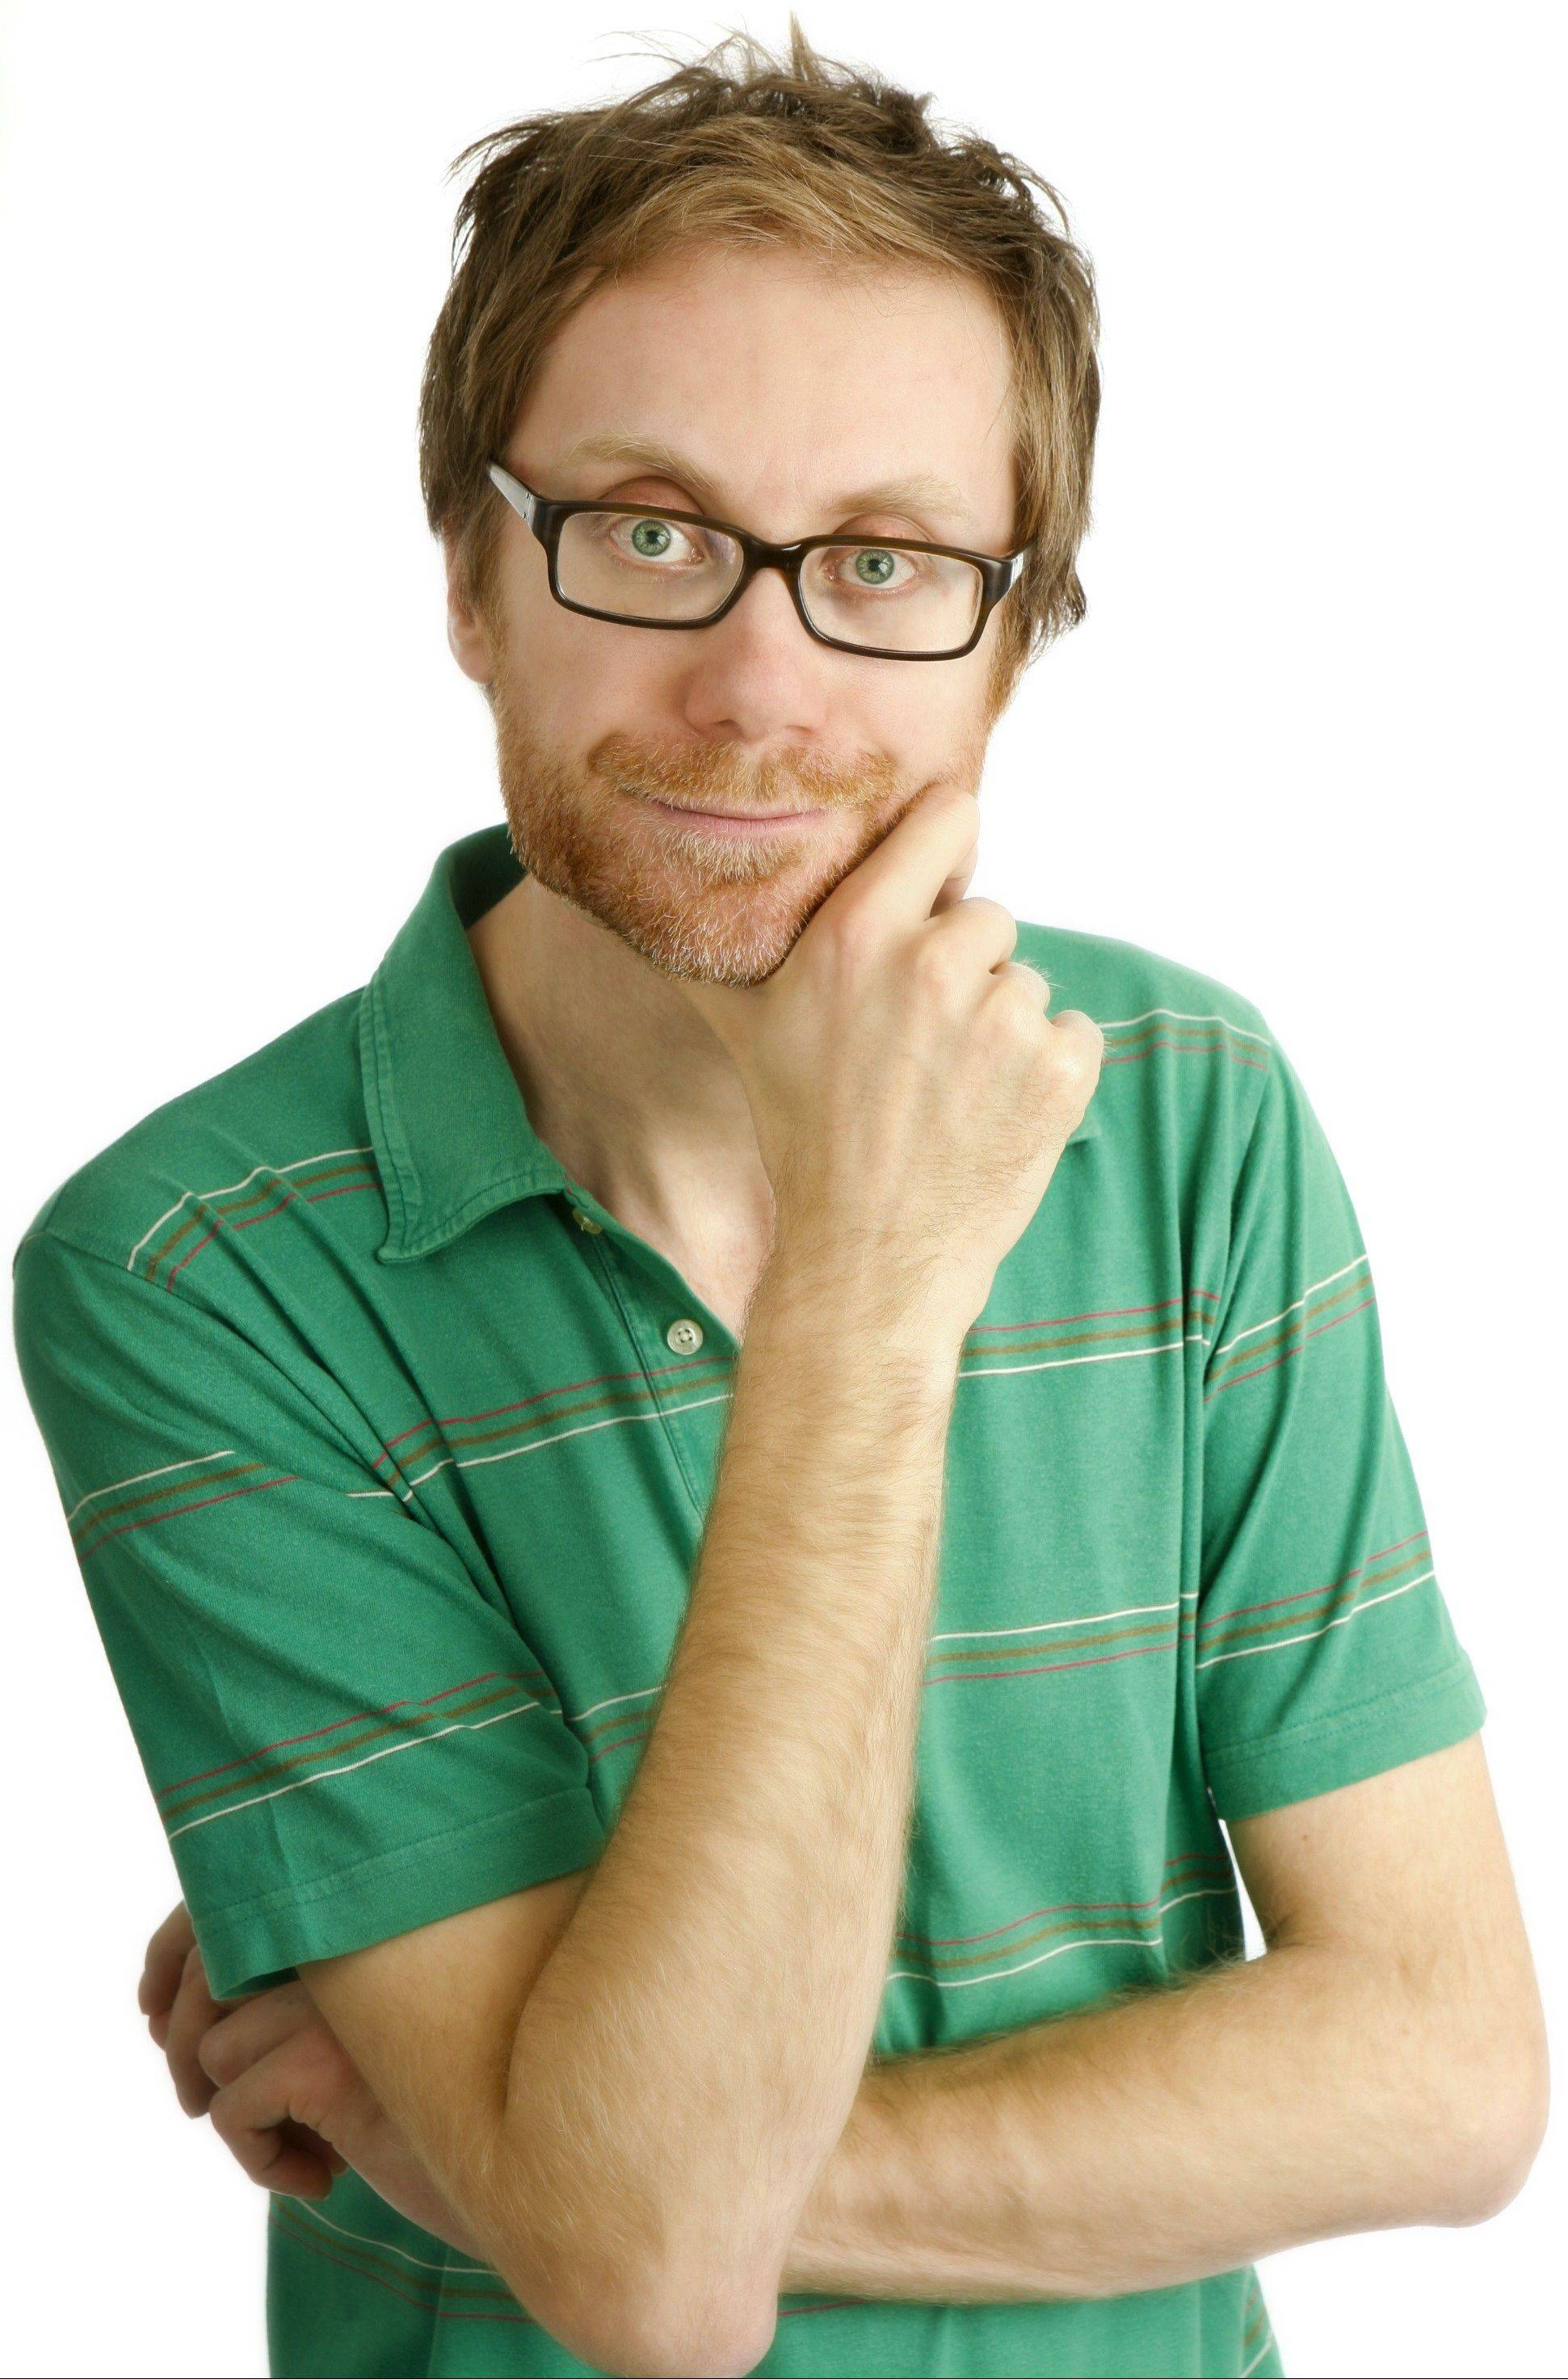 Stephen Merchant is on the Just for Laughs roster for the first time. He performs at Park West in Chicago Thursday through Saturday, June 14-16.